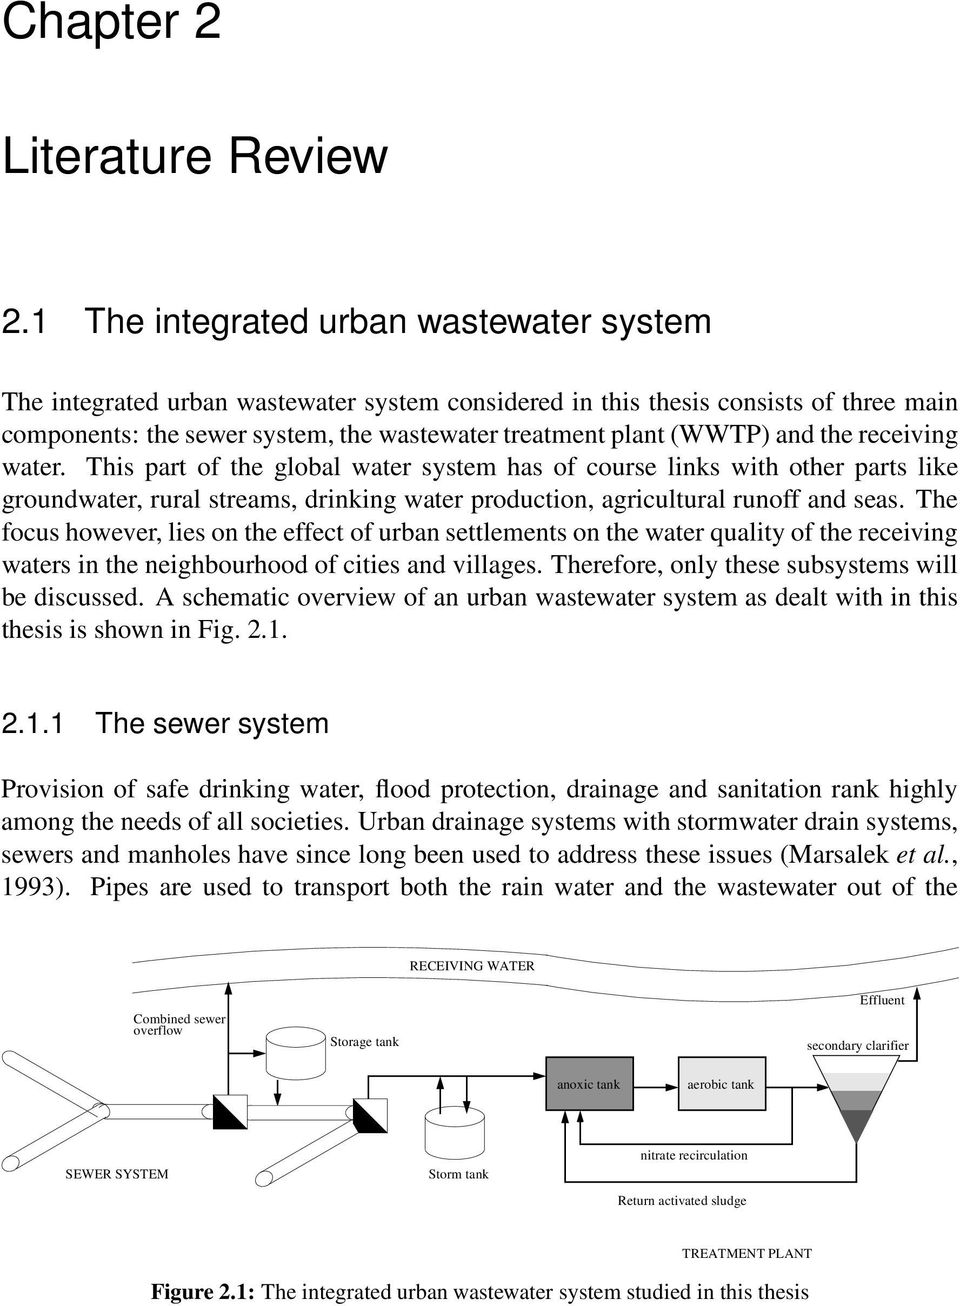 and the receiving water. This part of the global water system has of course links with other parts like groundwater, rural streams, drinking water production, agricultural runoff and seas.